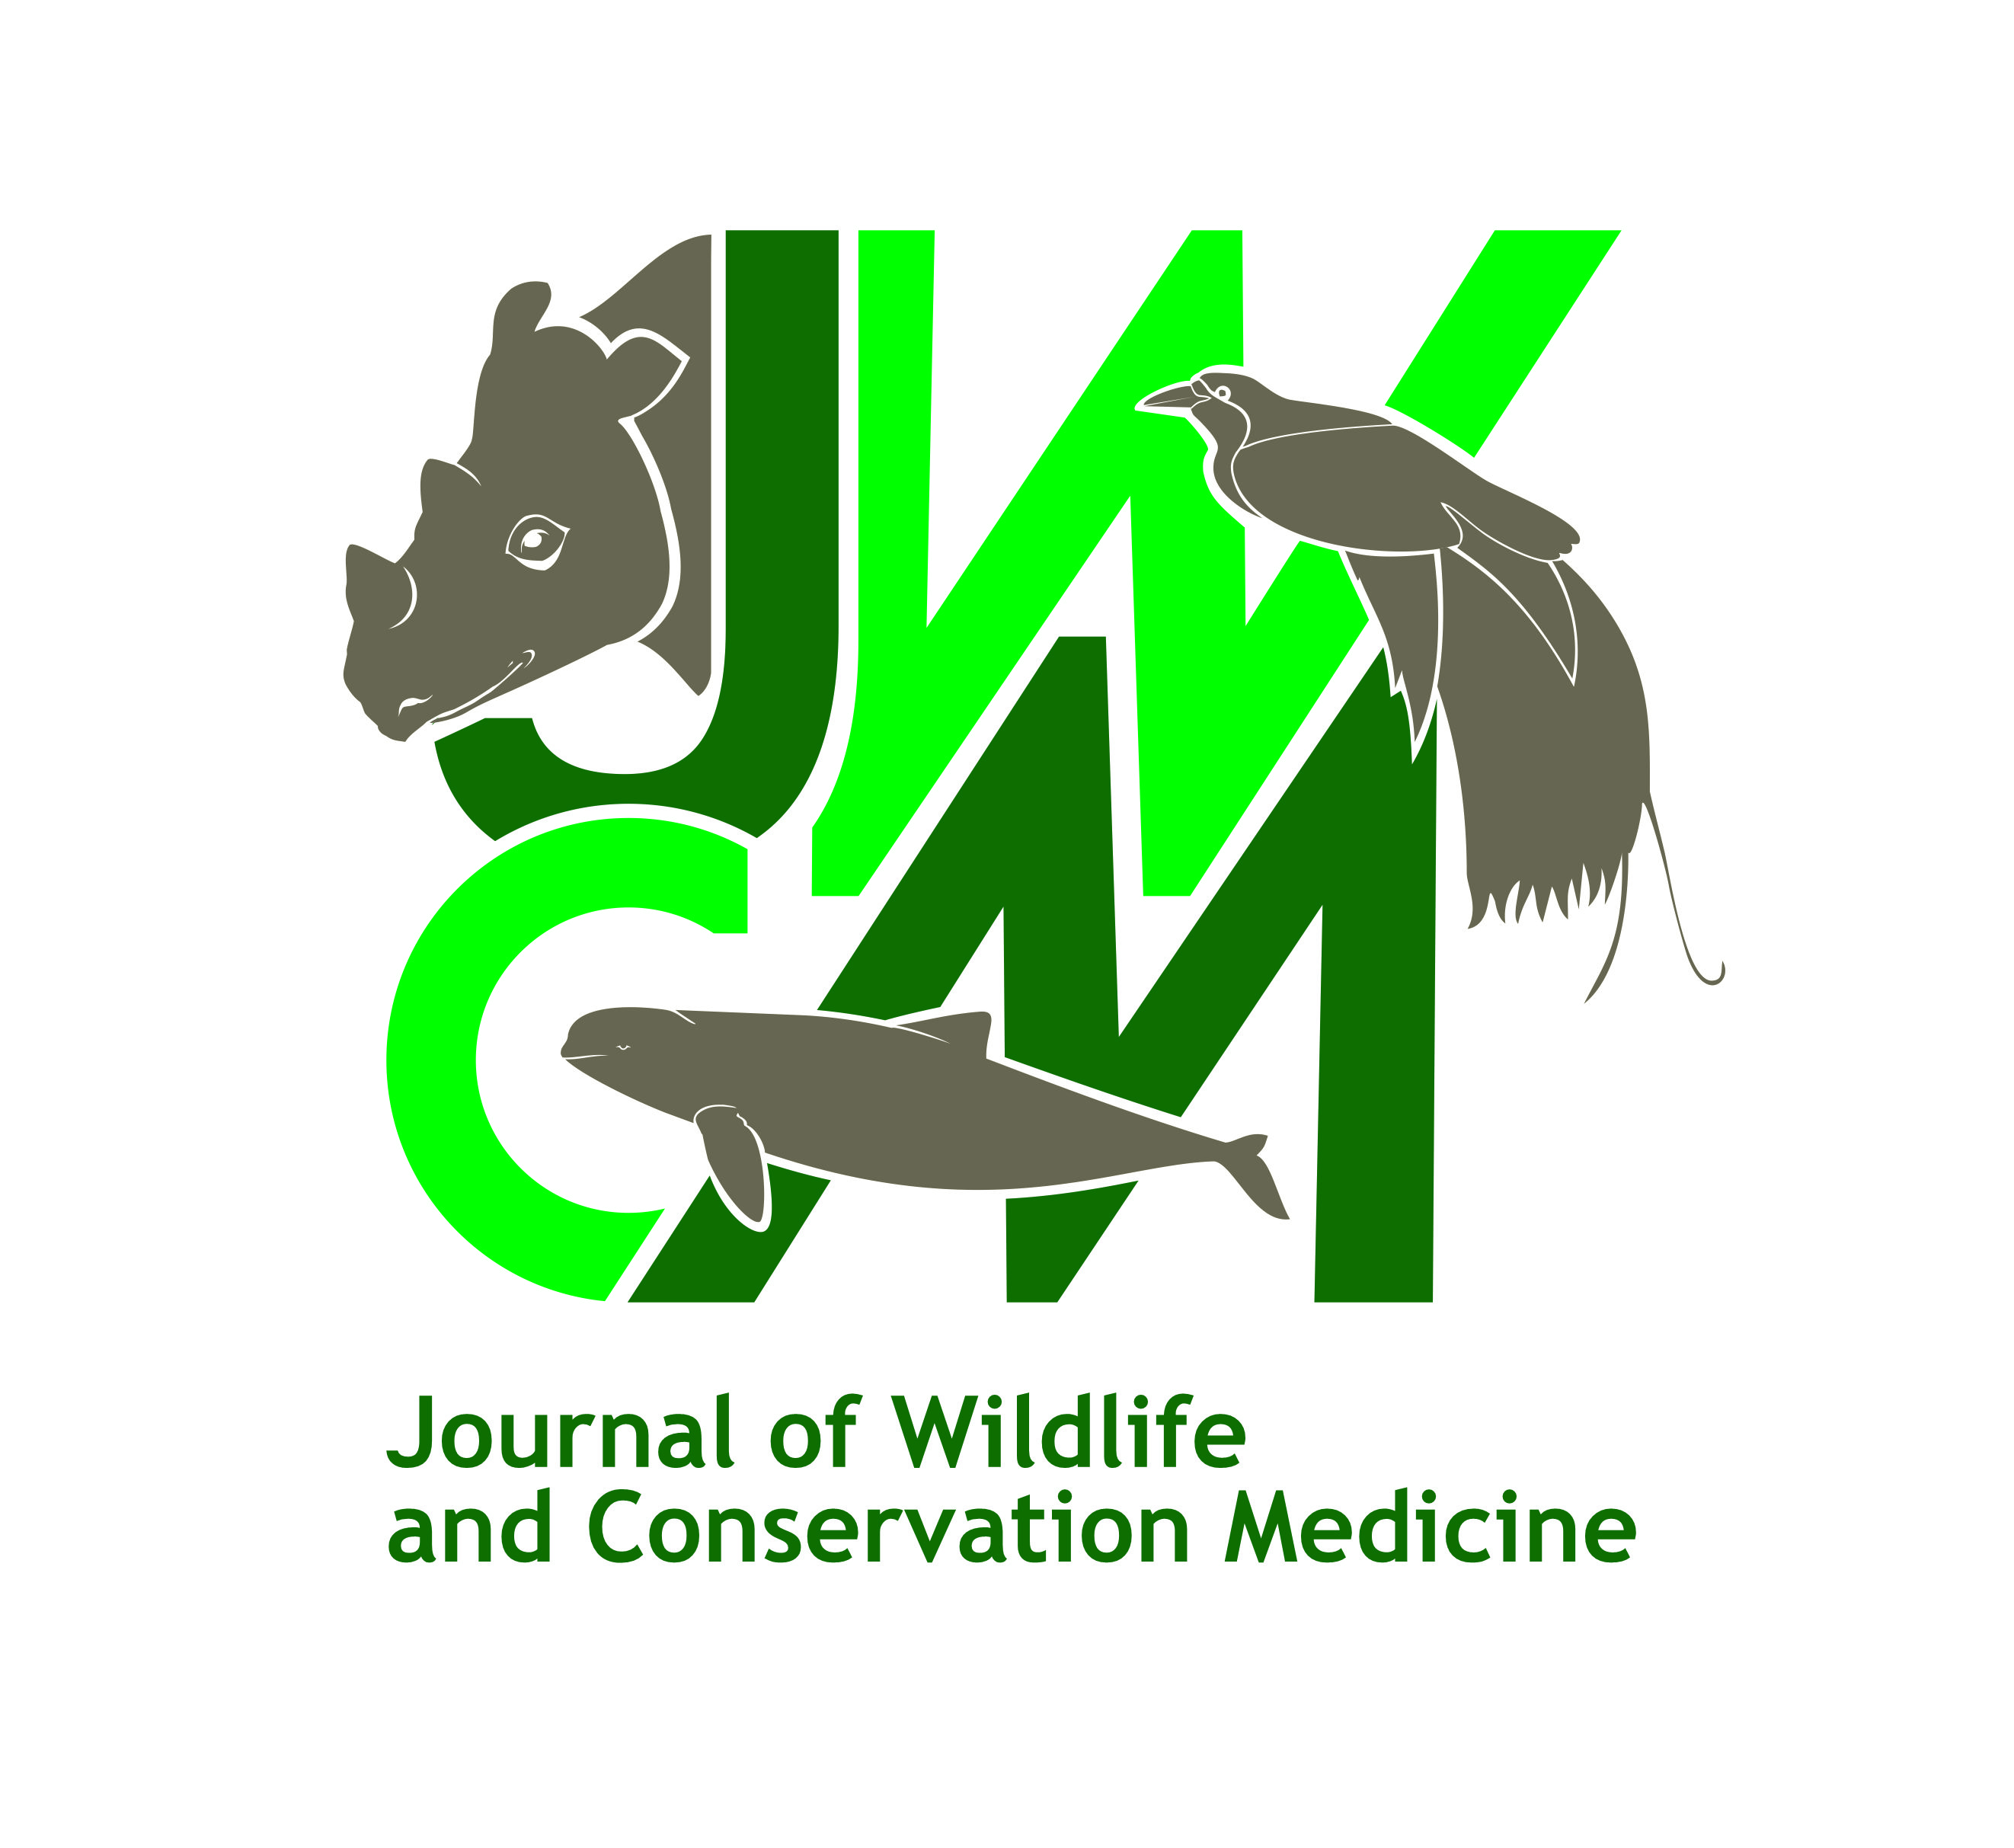 Journal of Wildlife and Conservation Medicine (J Wildl Coserv Med)